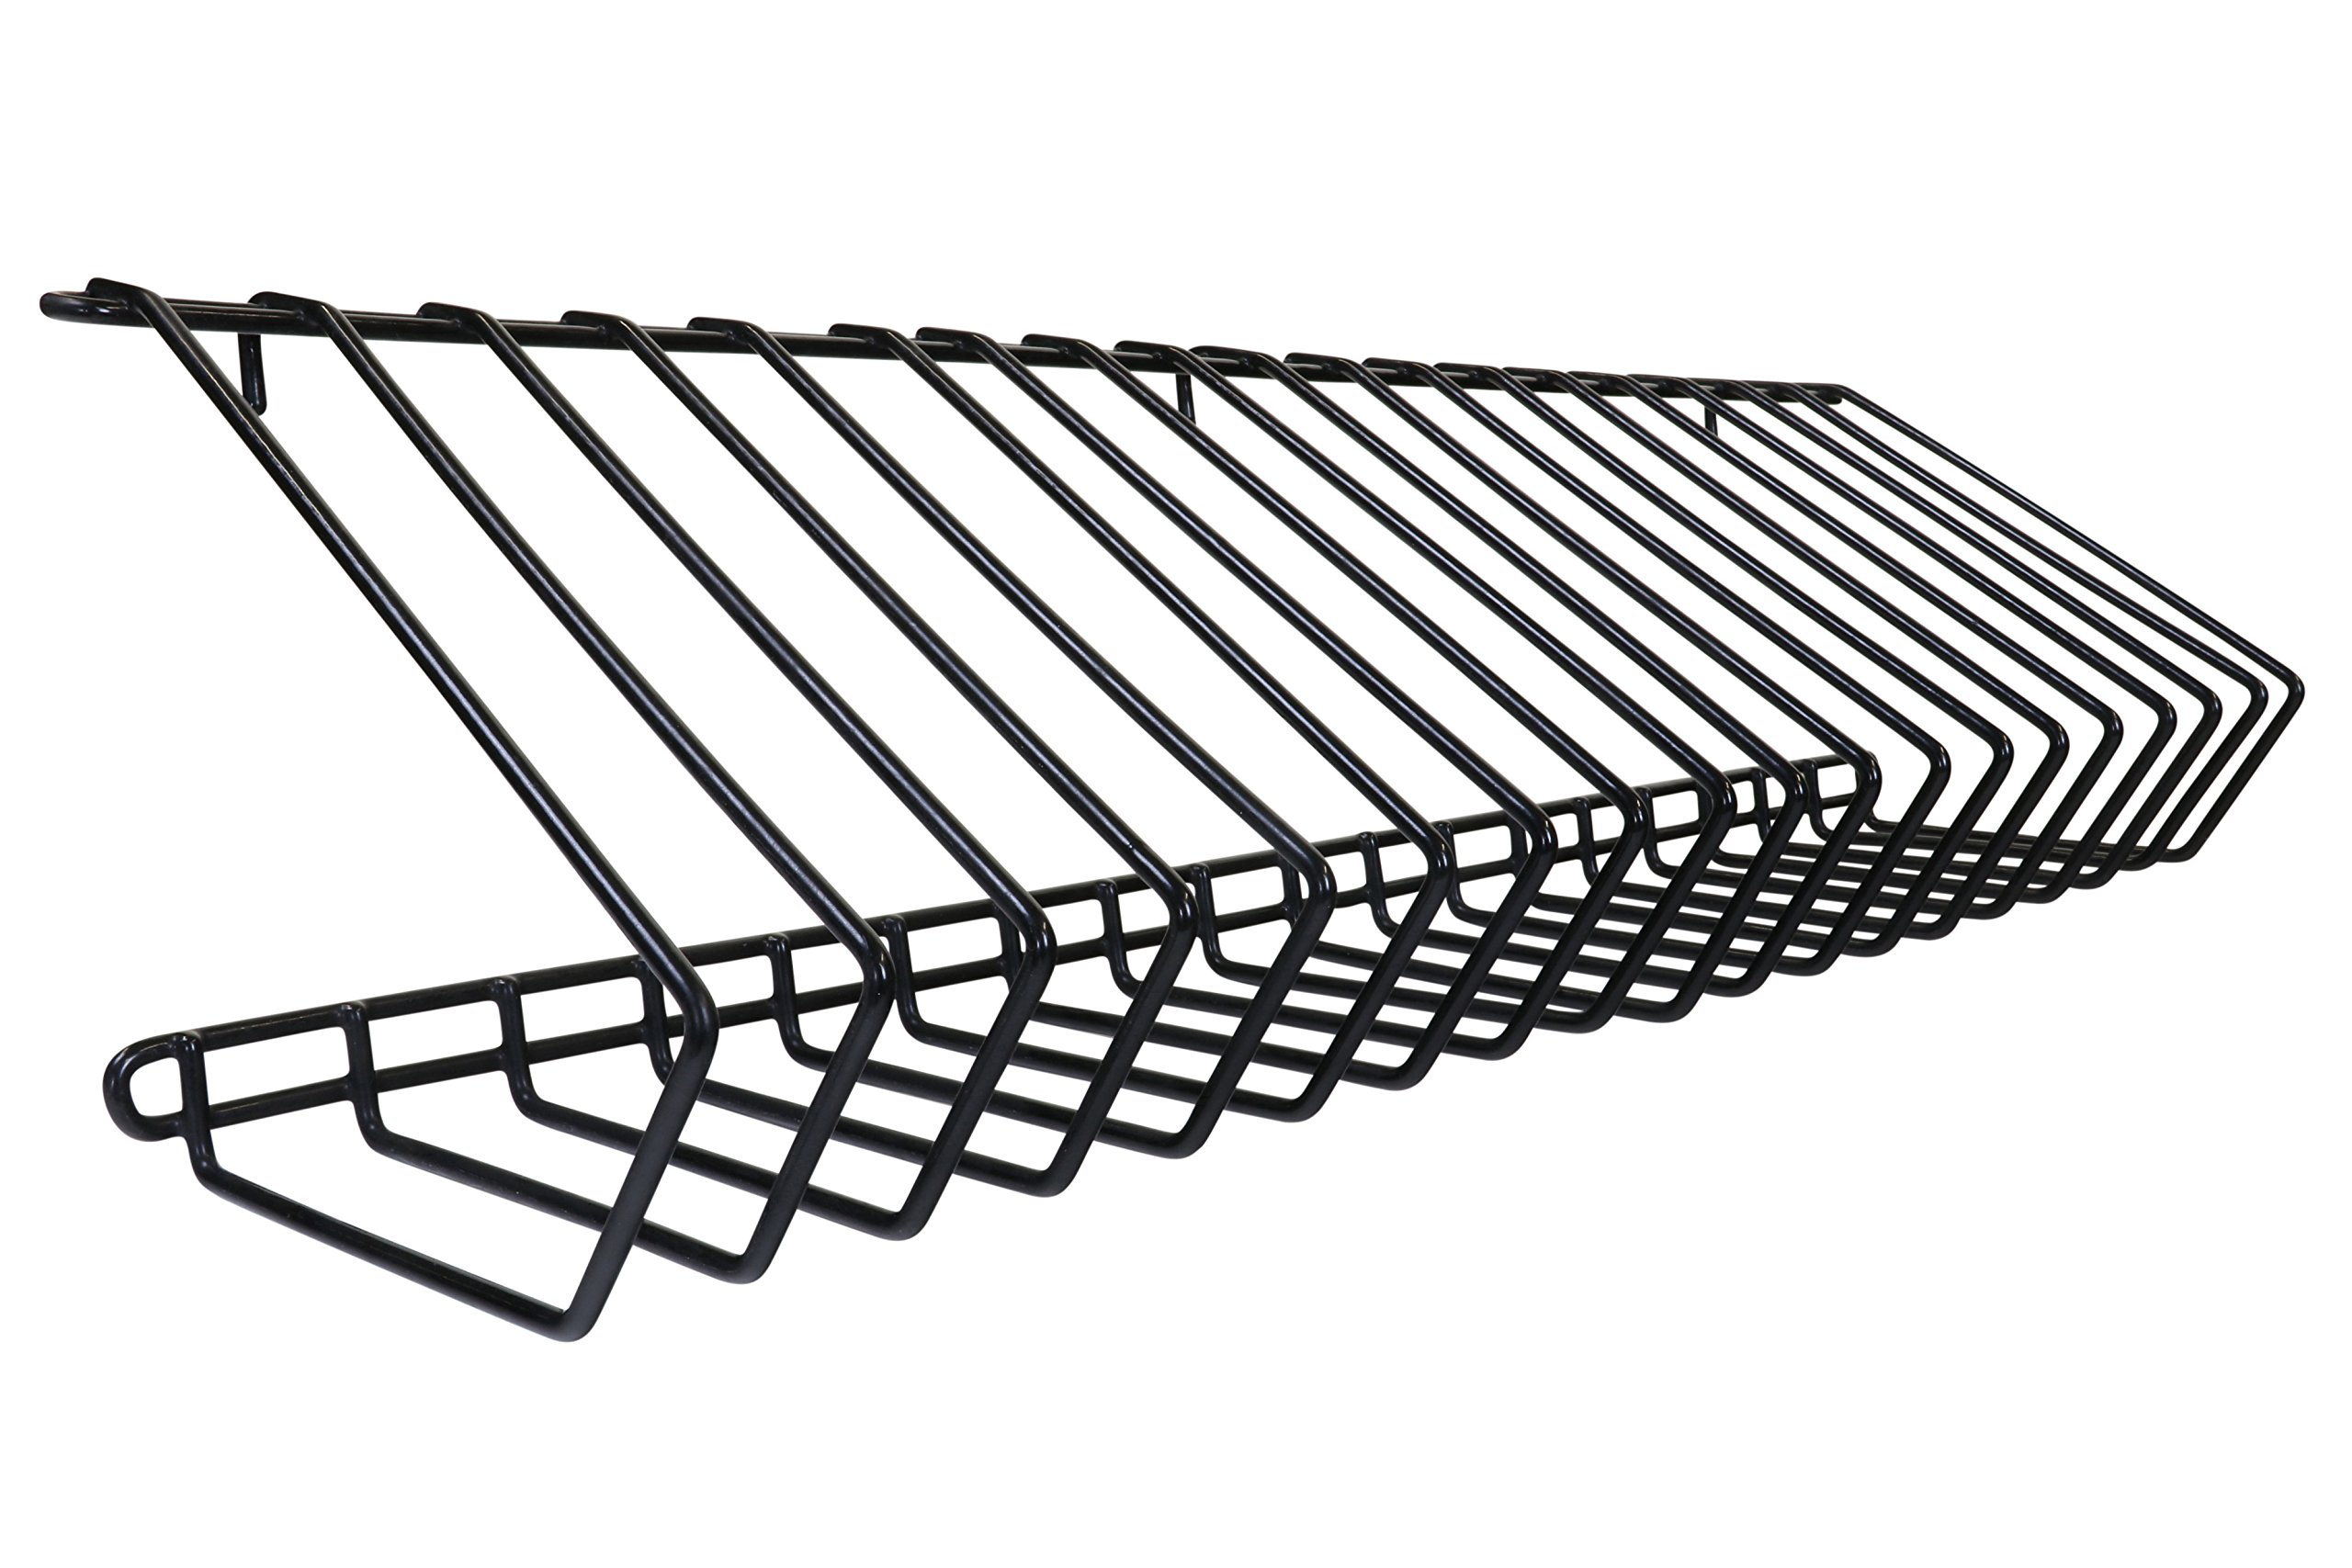 LocknCharge Carrier 40 Wire Rack Pair 20 Slot, Black (10108) by LocknCharge